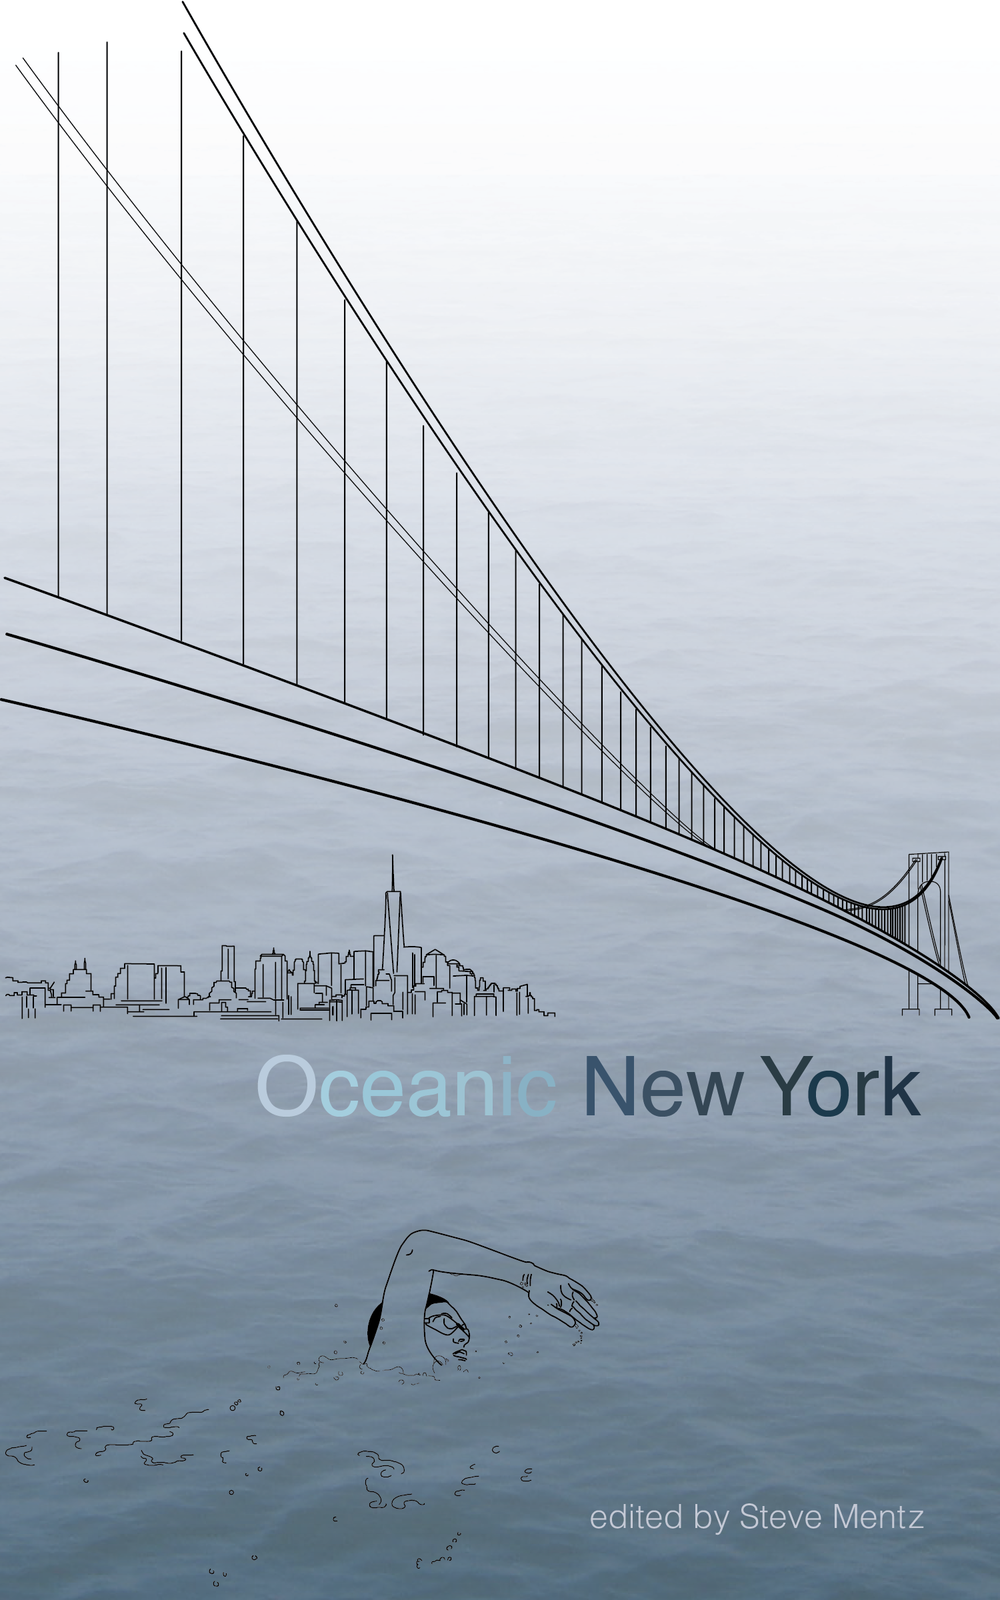 oceanic-new-york